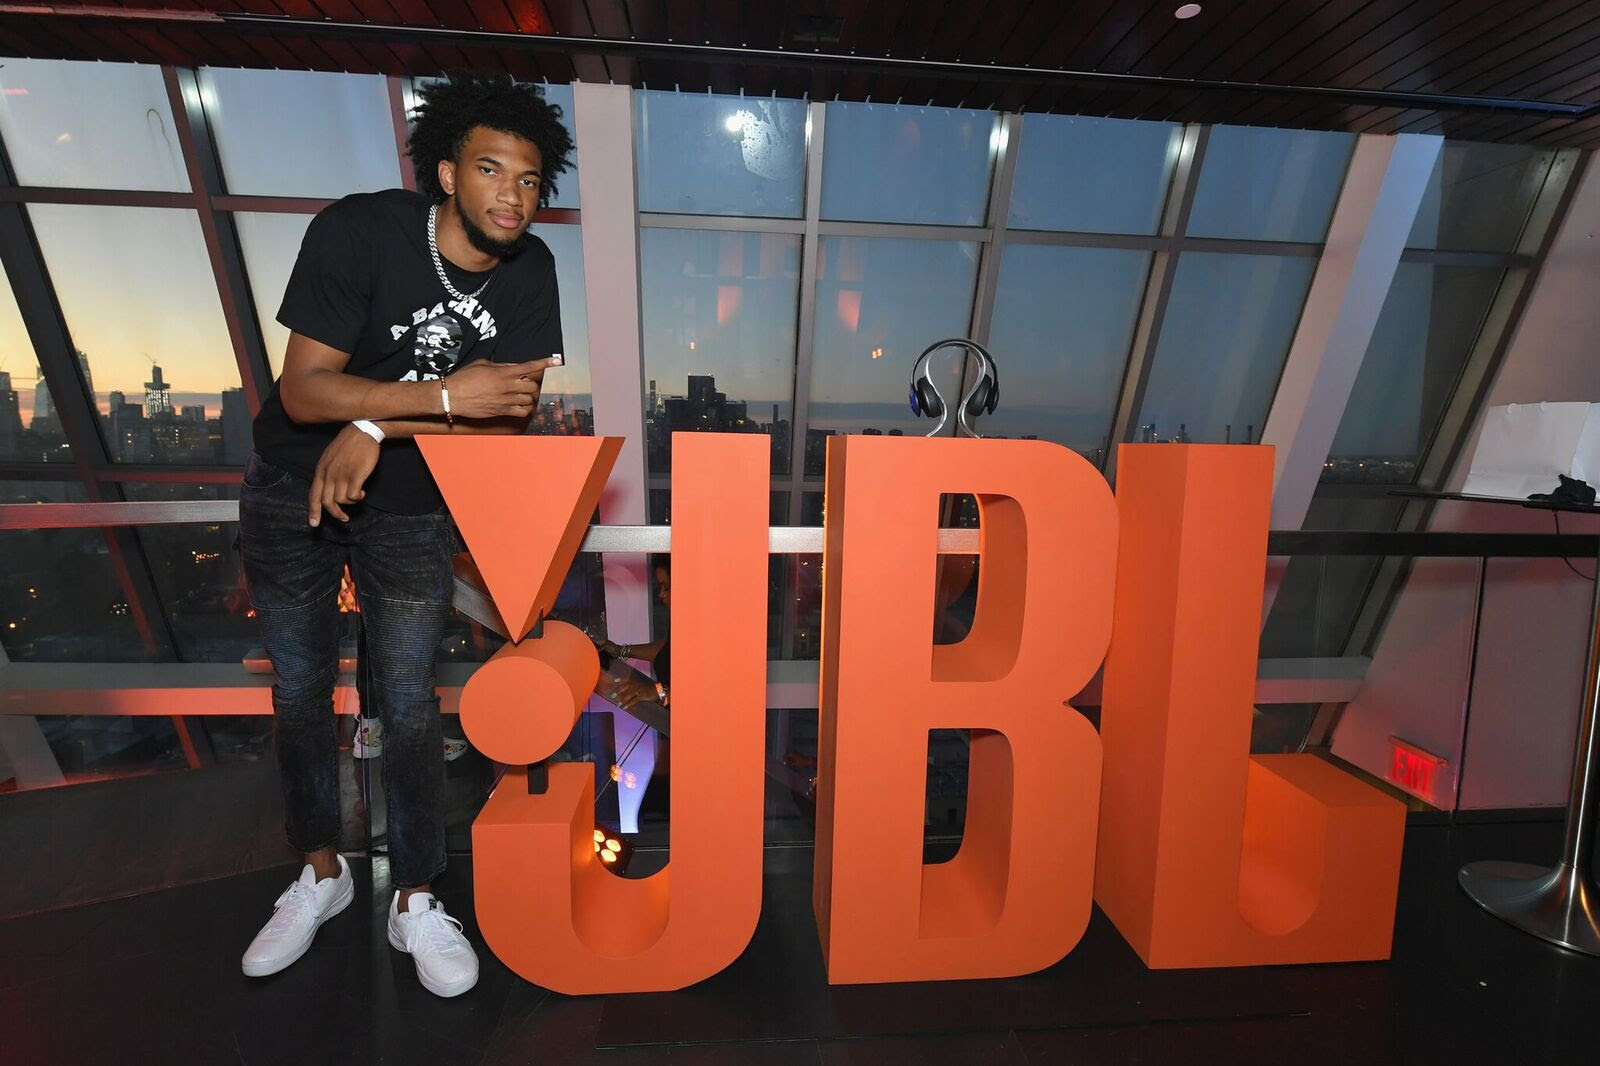 JBL Audio Welcomes Marvin Bagley III to the NBA With NYC Event